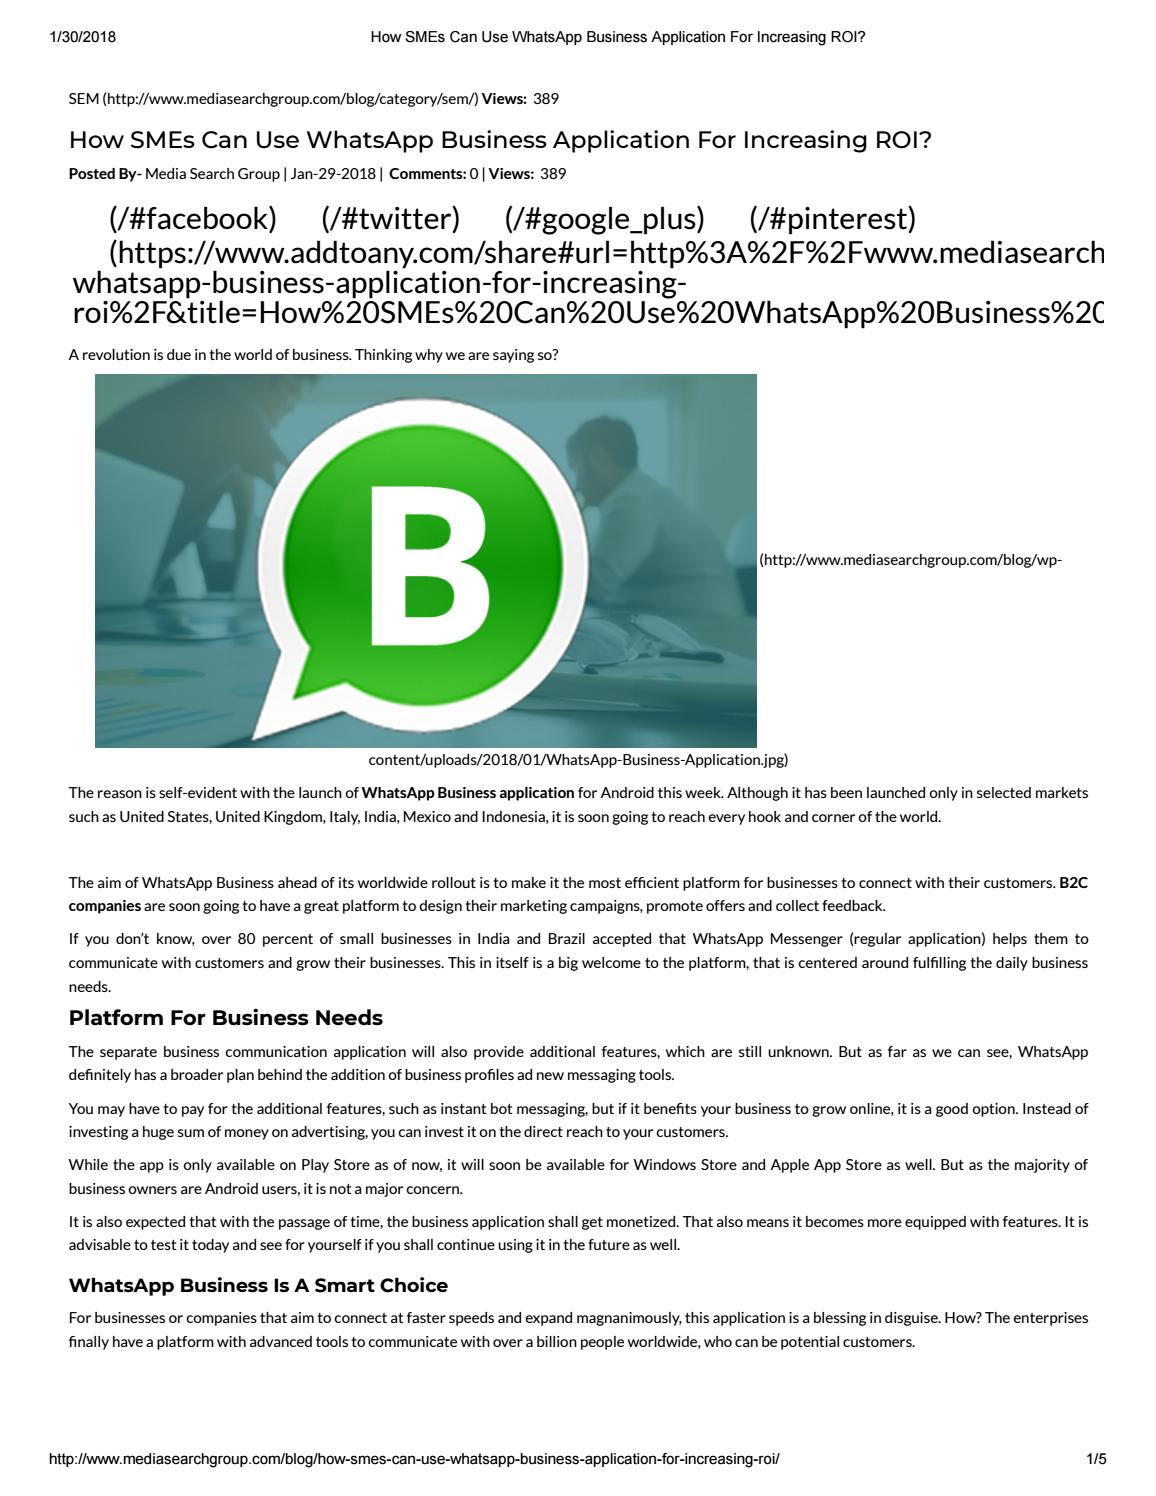 How Smes Can Use Whatsapp Business Application For Increasing Roi By Digitalmarketingmsg Issuu